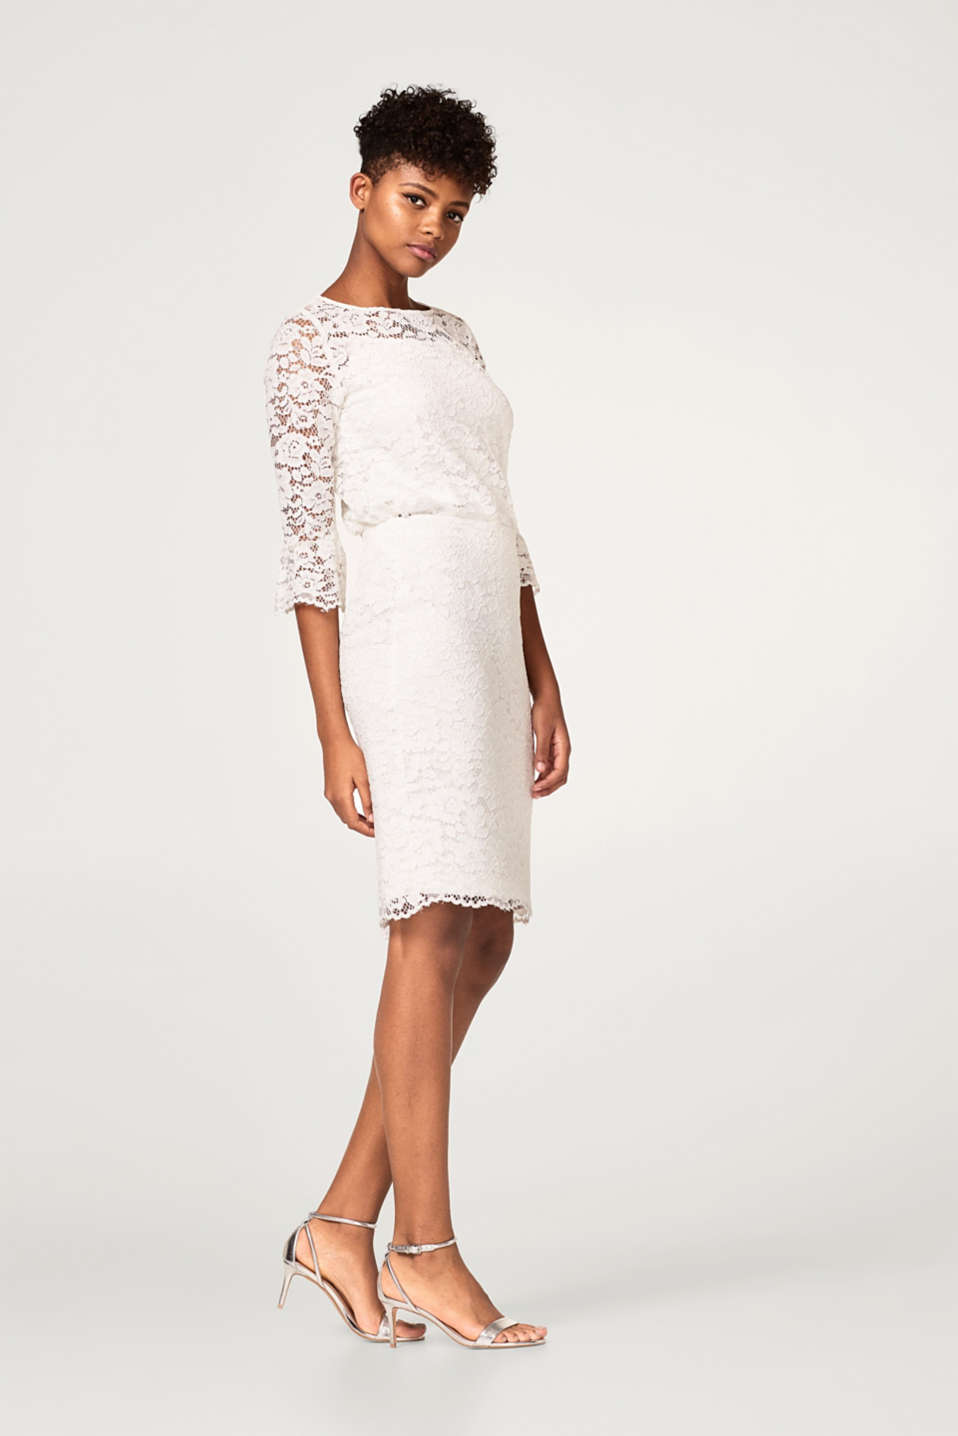 Esprit - Sheath skirt in floral lace